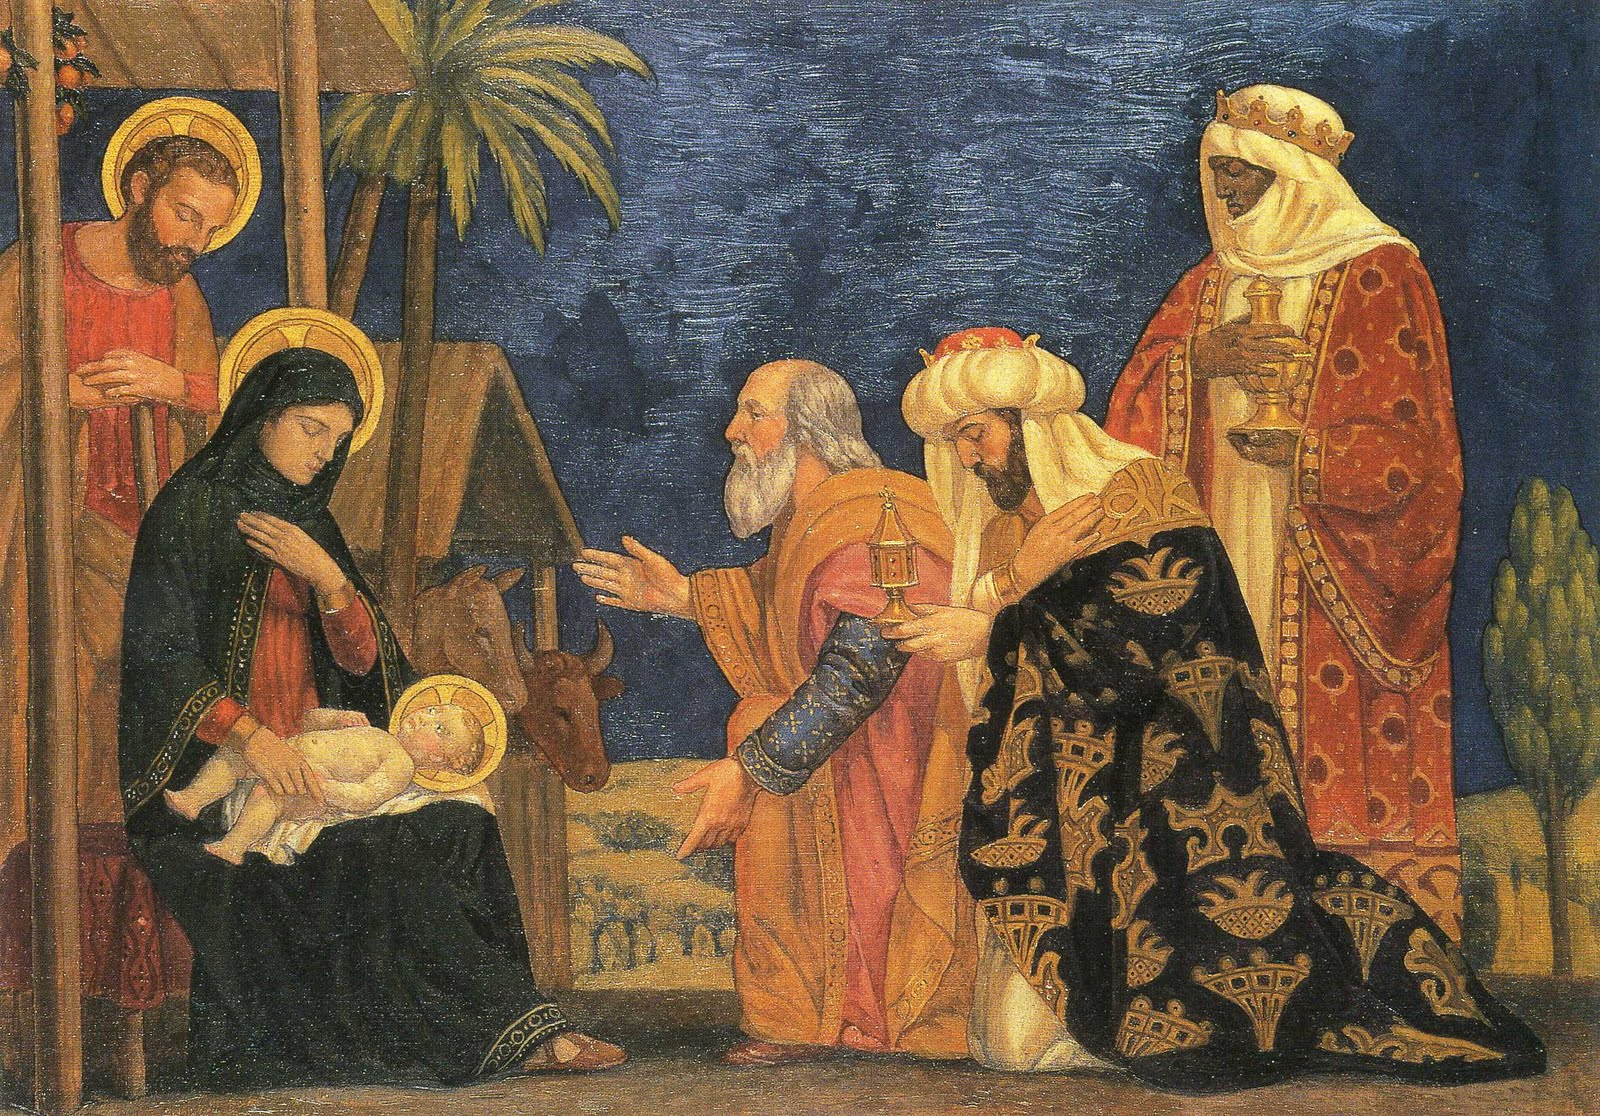 The Annunciation and the Adoration of the Magi